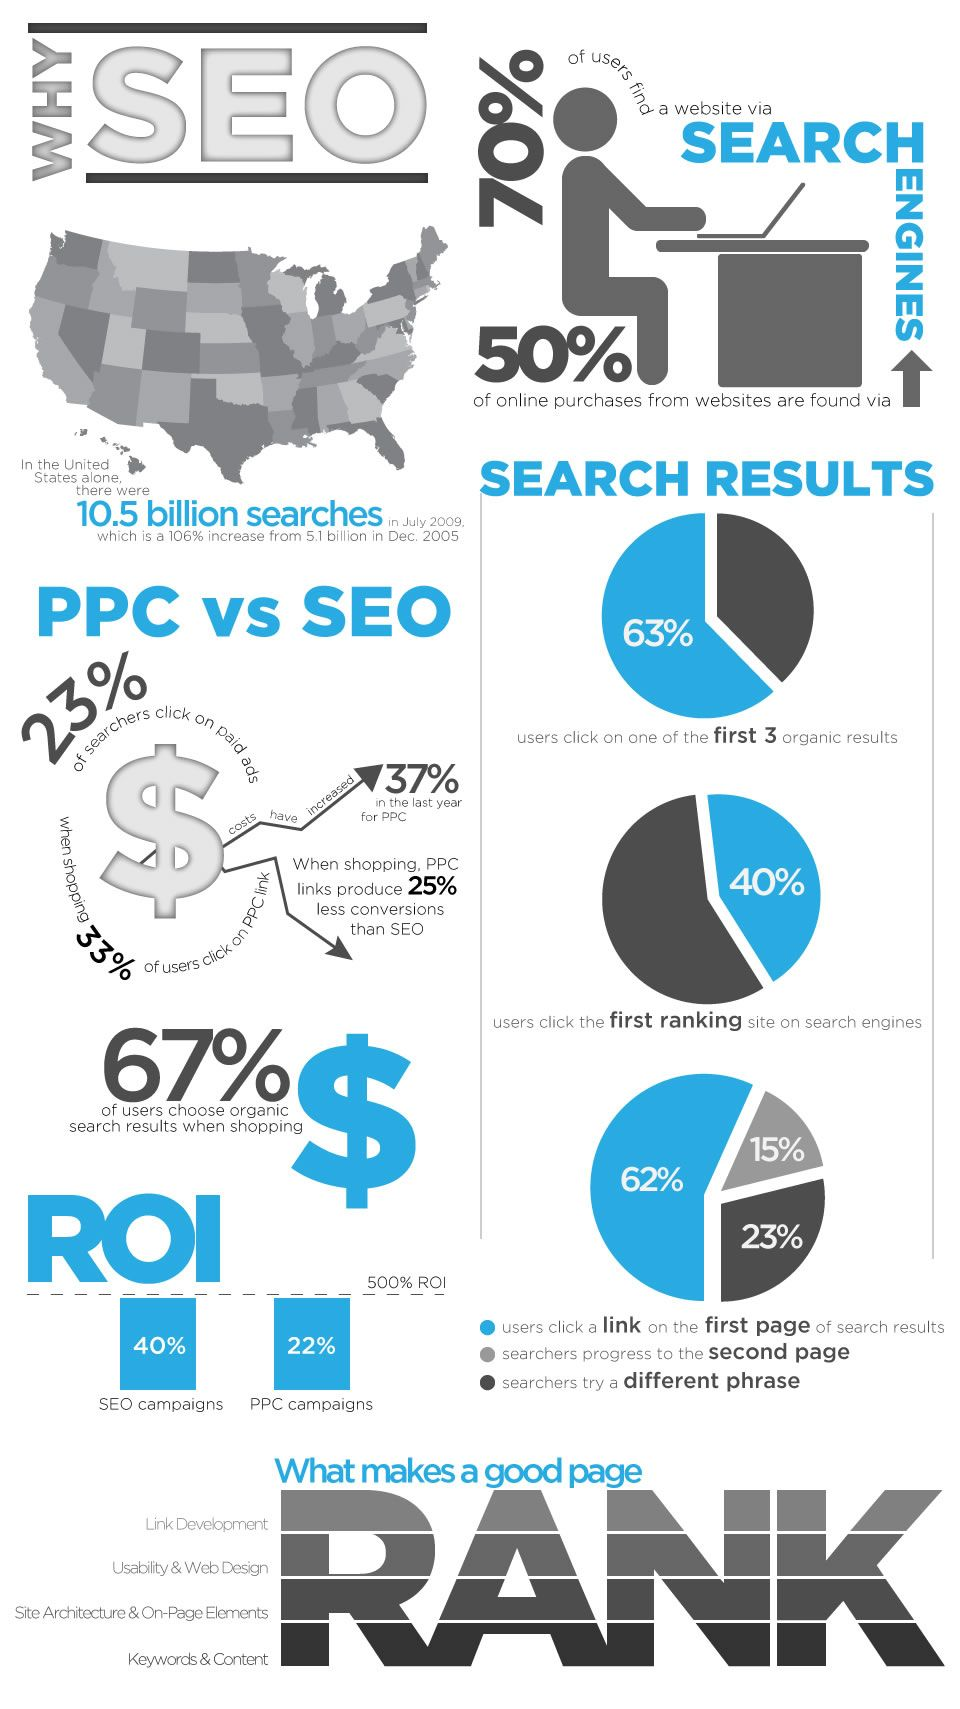 SEO is an acronym for